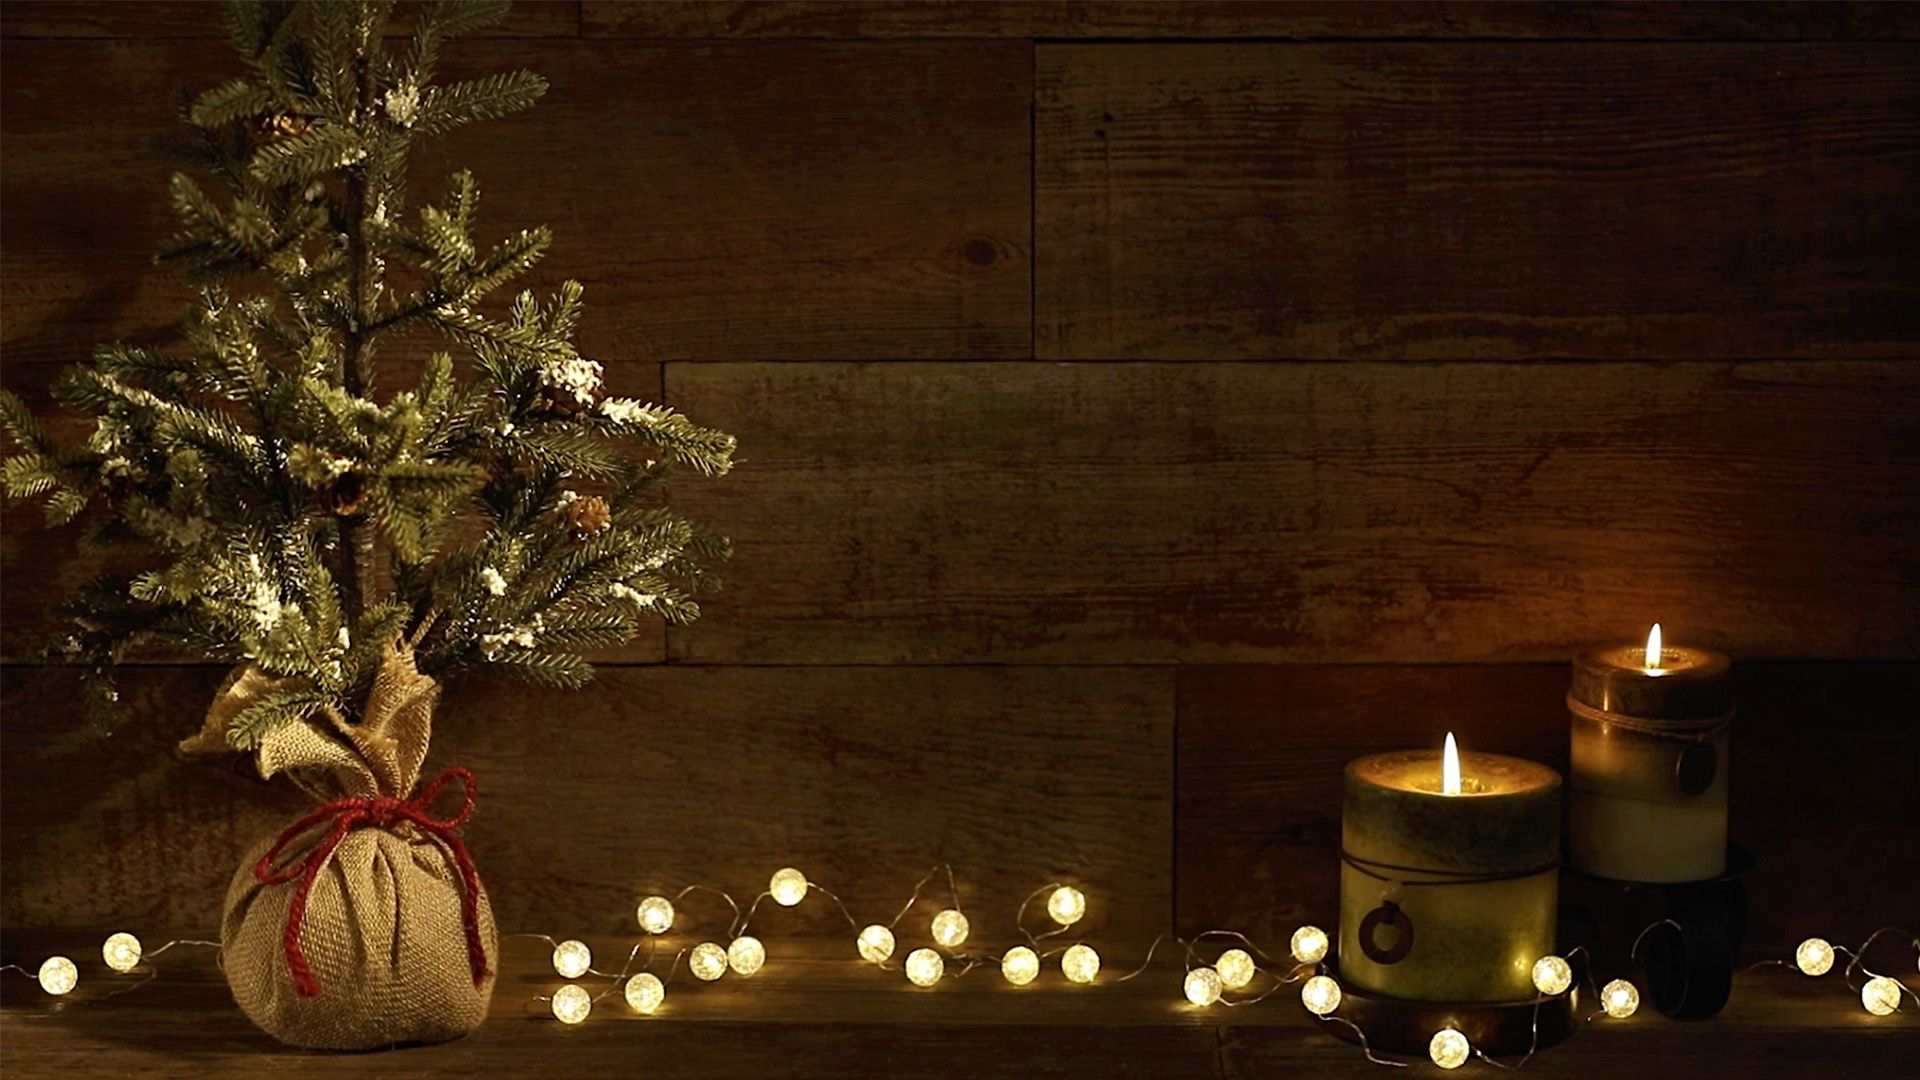 Christmas Background Videos | Christmas background, Merry, Christmas